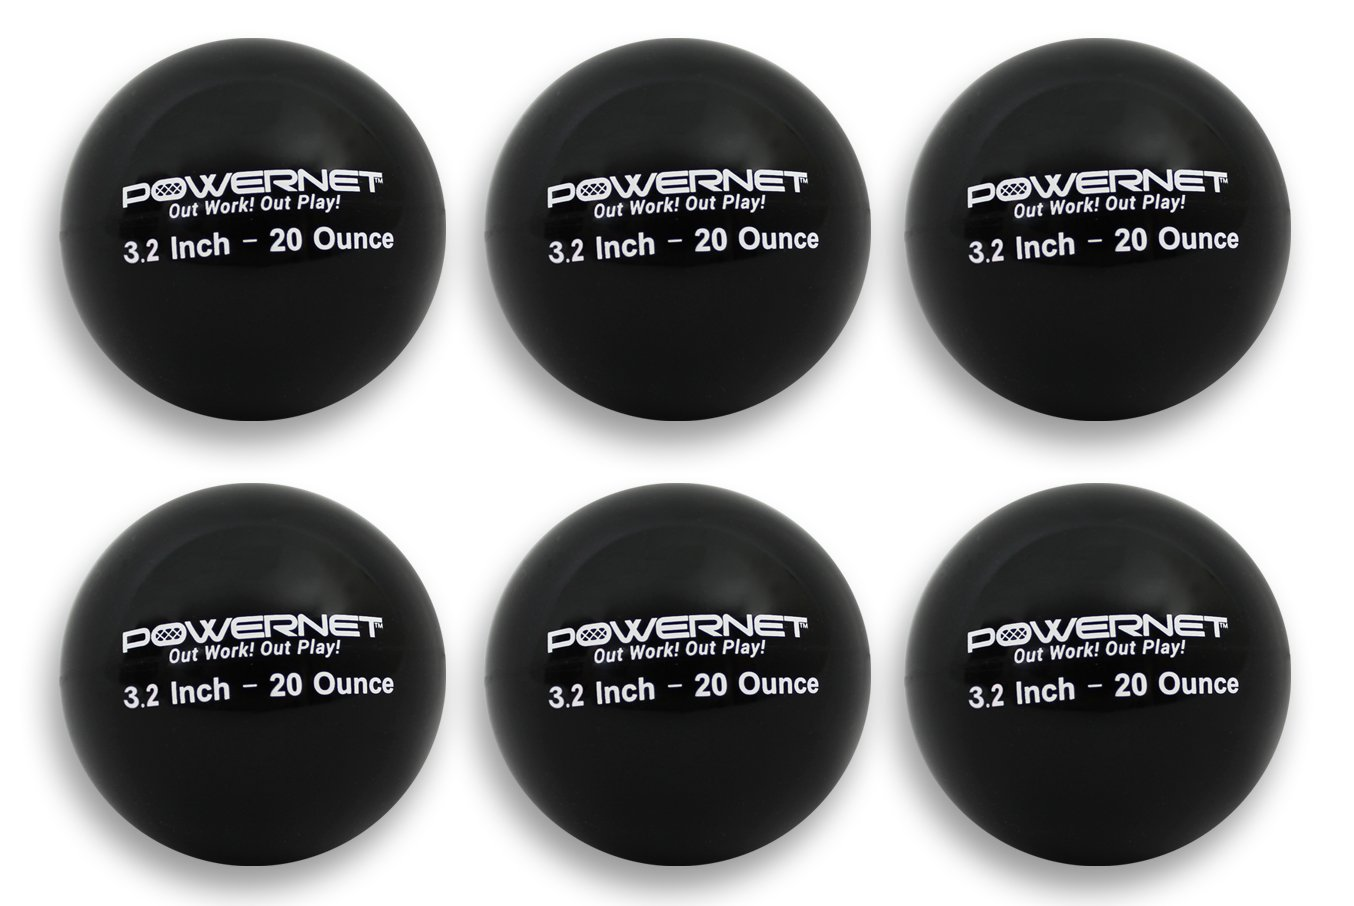 PowerNet 3.2'' Weighted Hitting Batting Training Balls (6 Pack) | 20 oz Black | Build Strength and Muscle | Improve Technique and Form | Softball Size | Enhance Hand-Eye Coordination by PowerNet